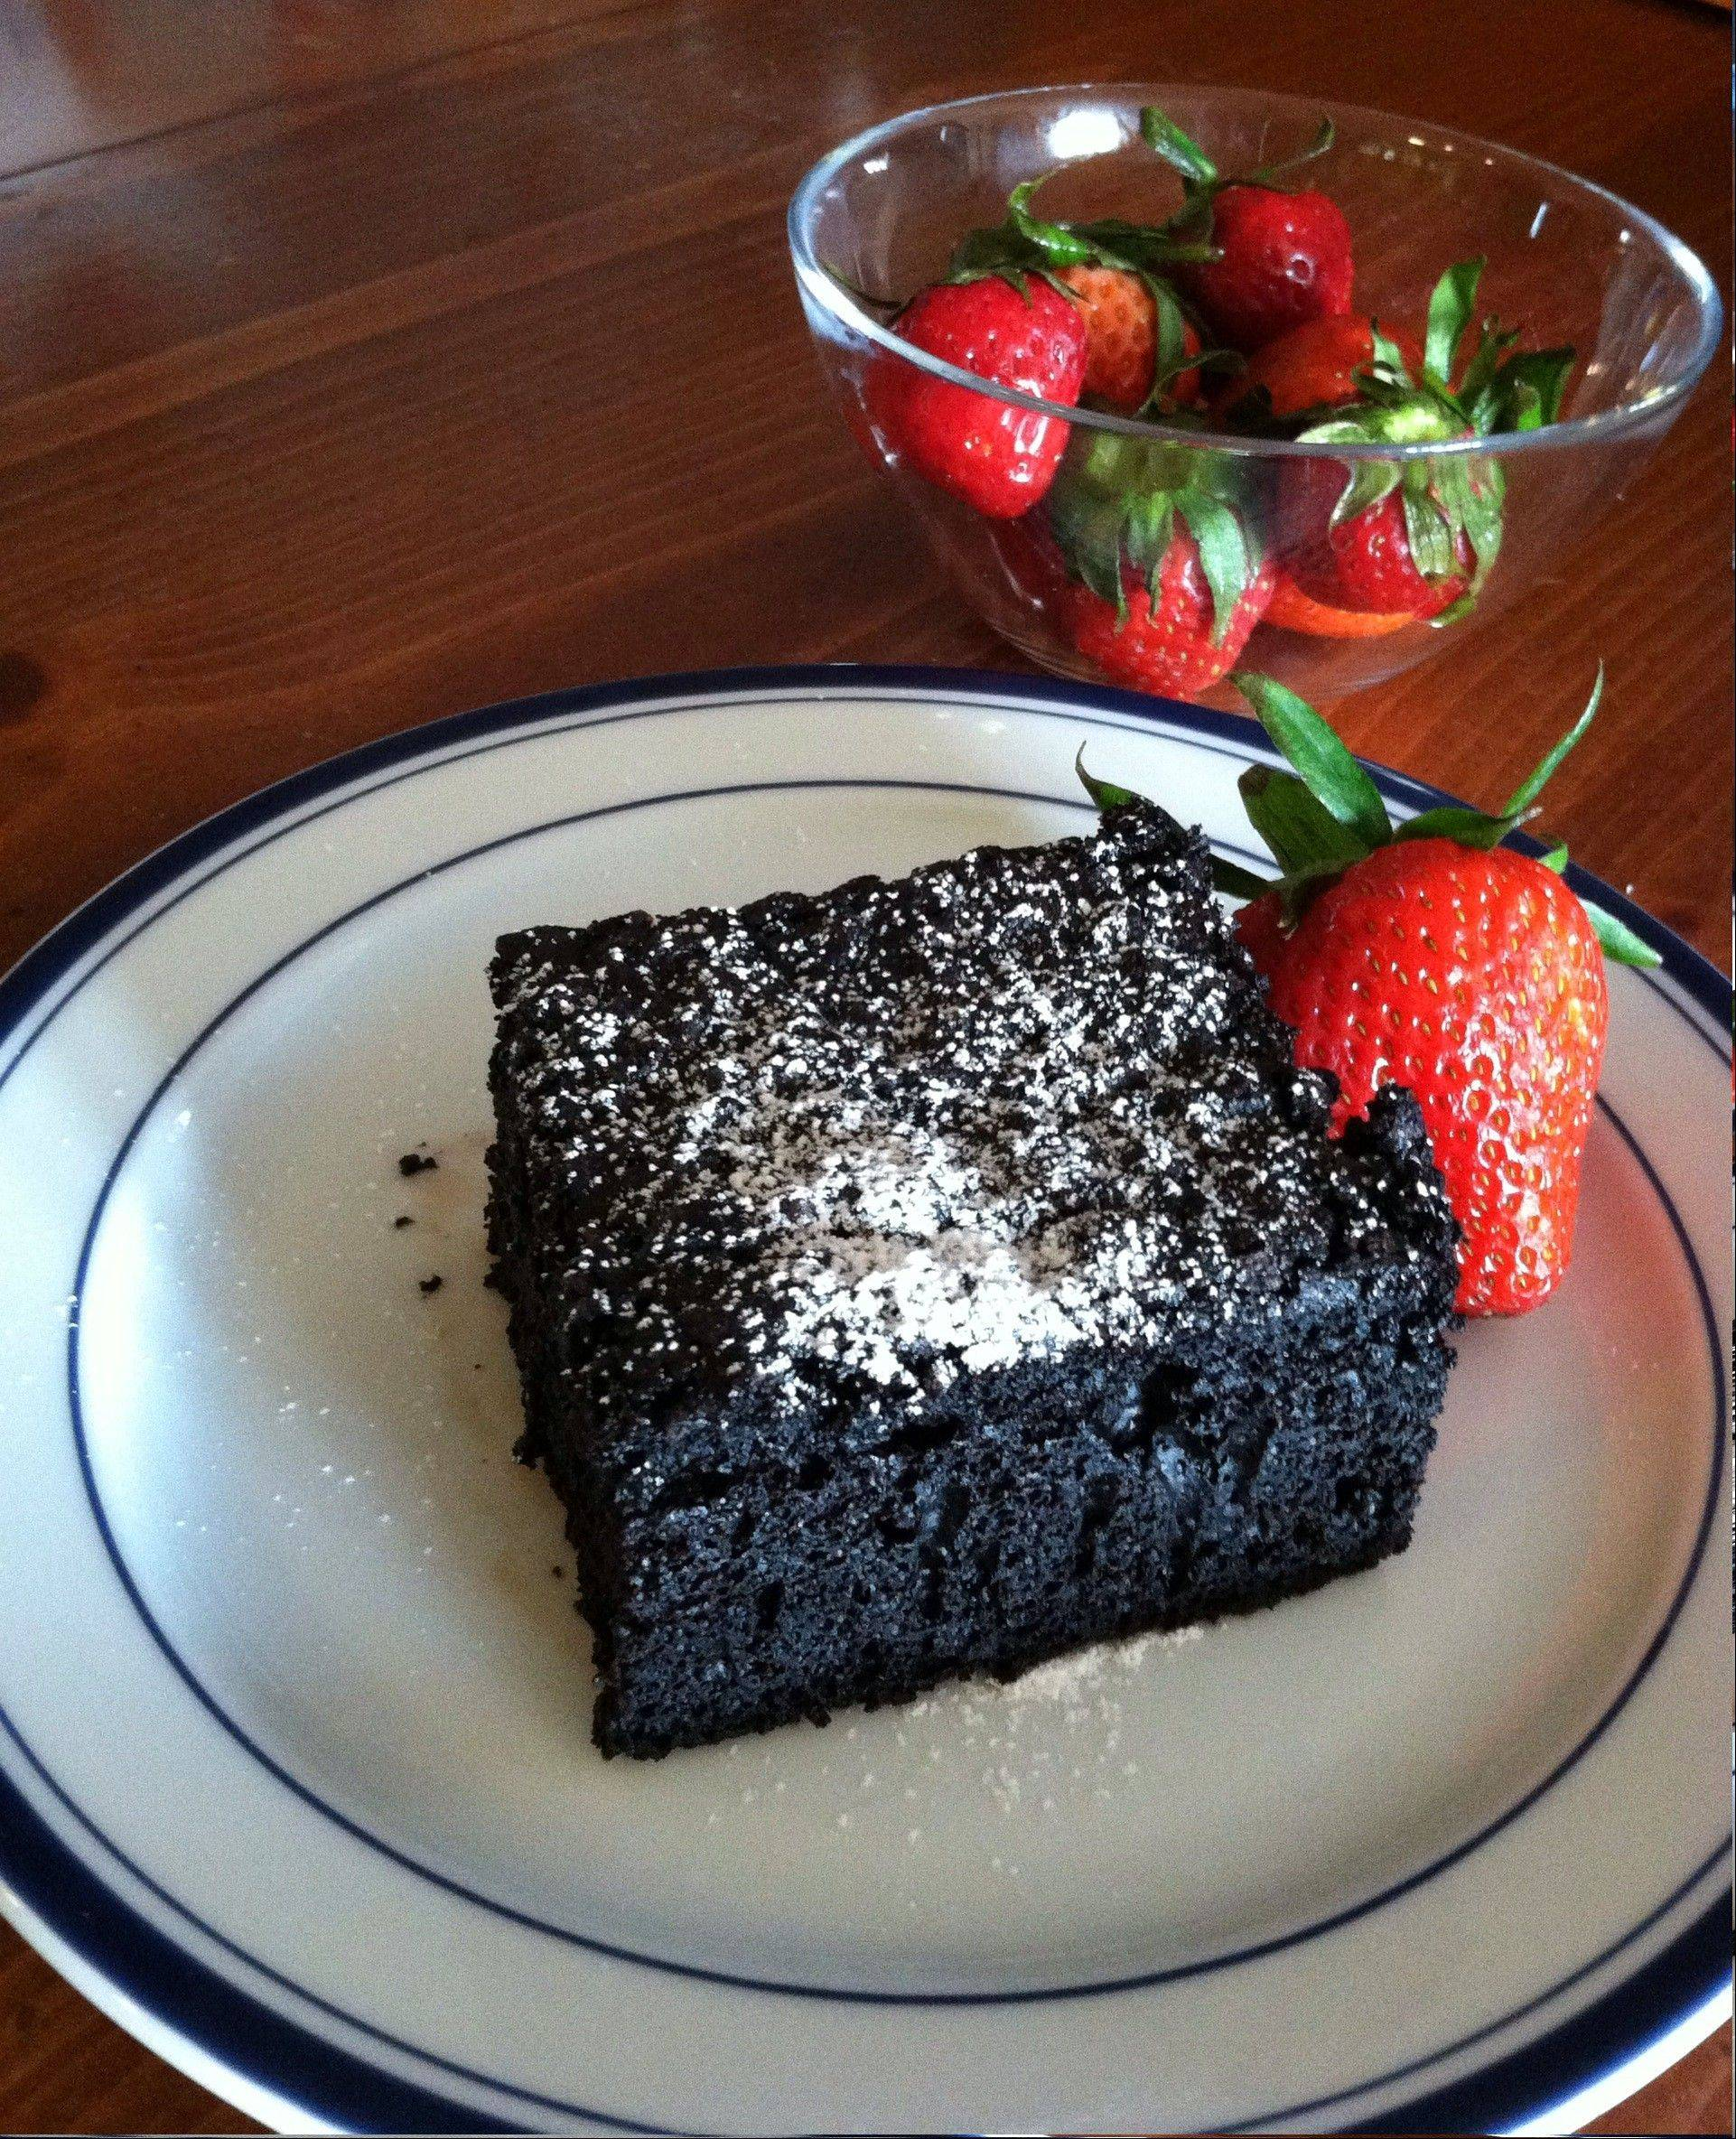 Don's Dark Chocolate Cake